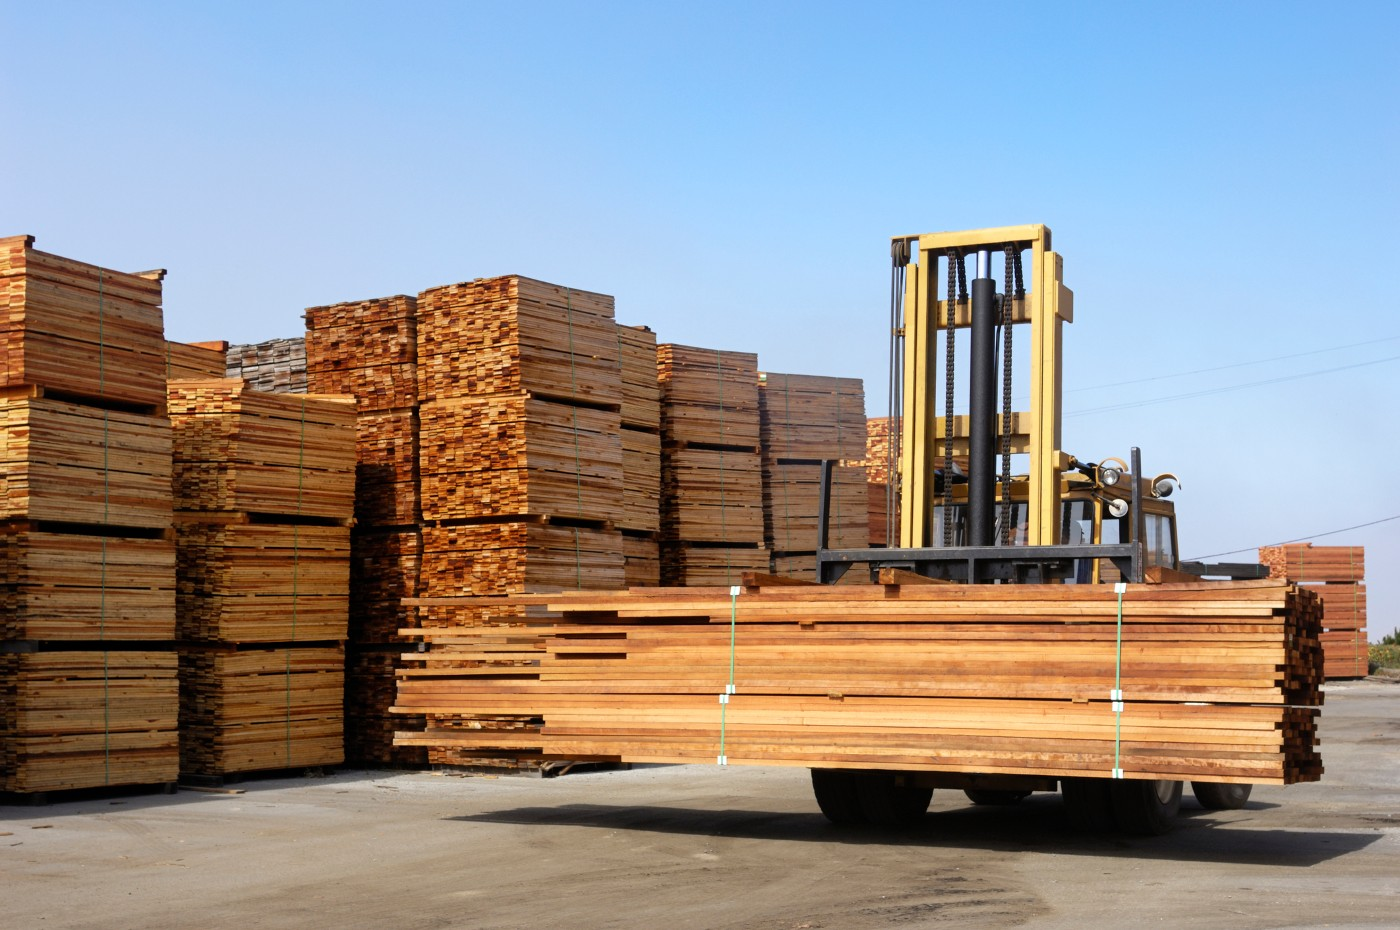 https://tickertapecdn.tdameritrade.com/assets/images/pages/md/Lumber yard: Commodity supercycle?